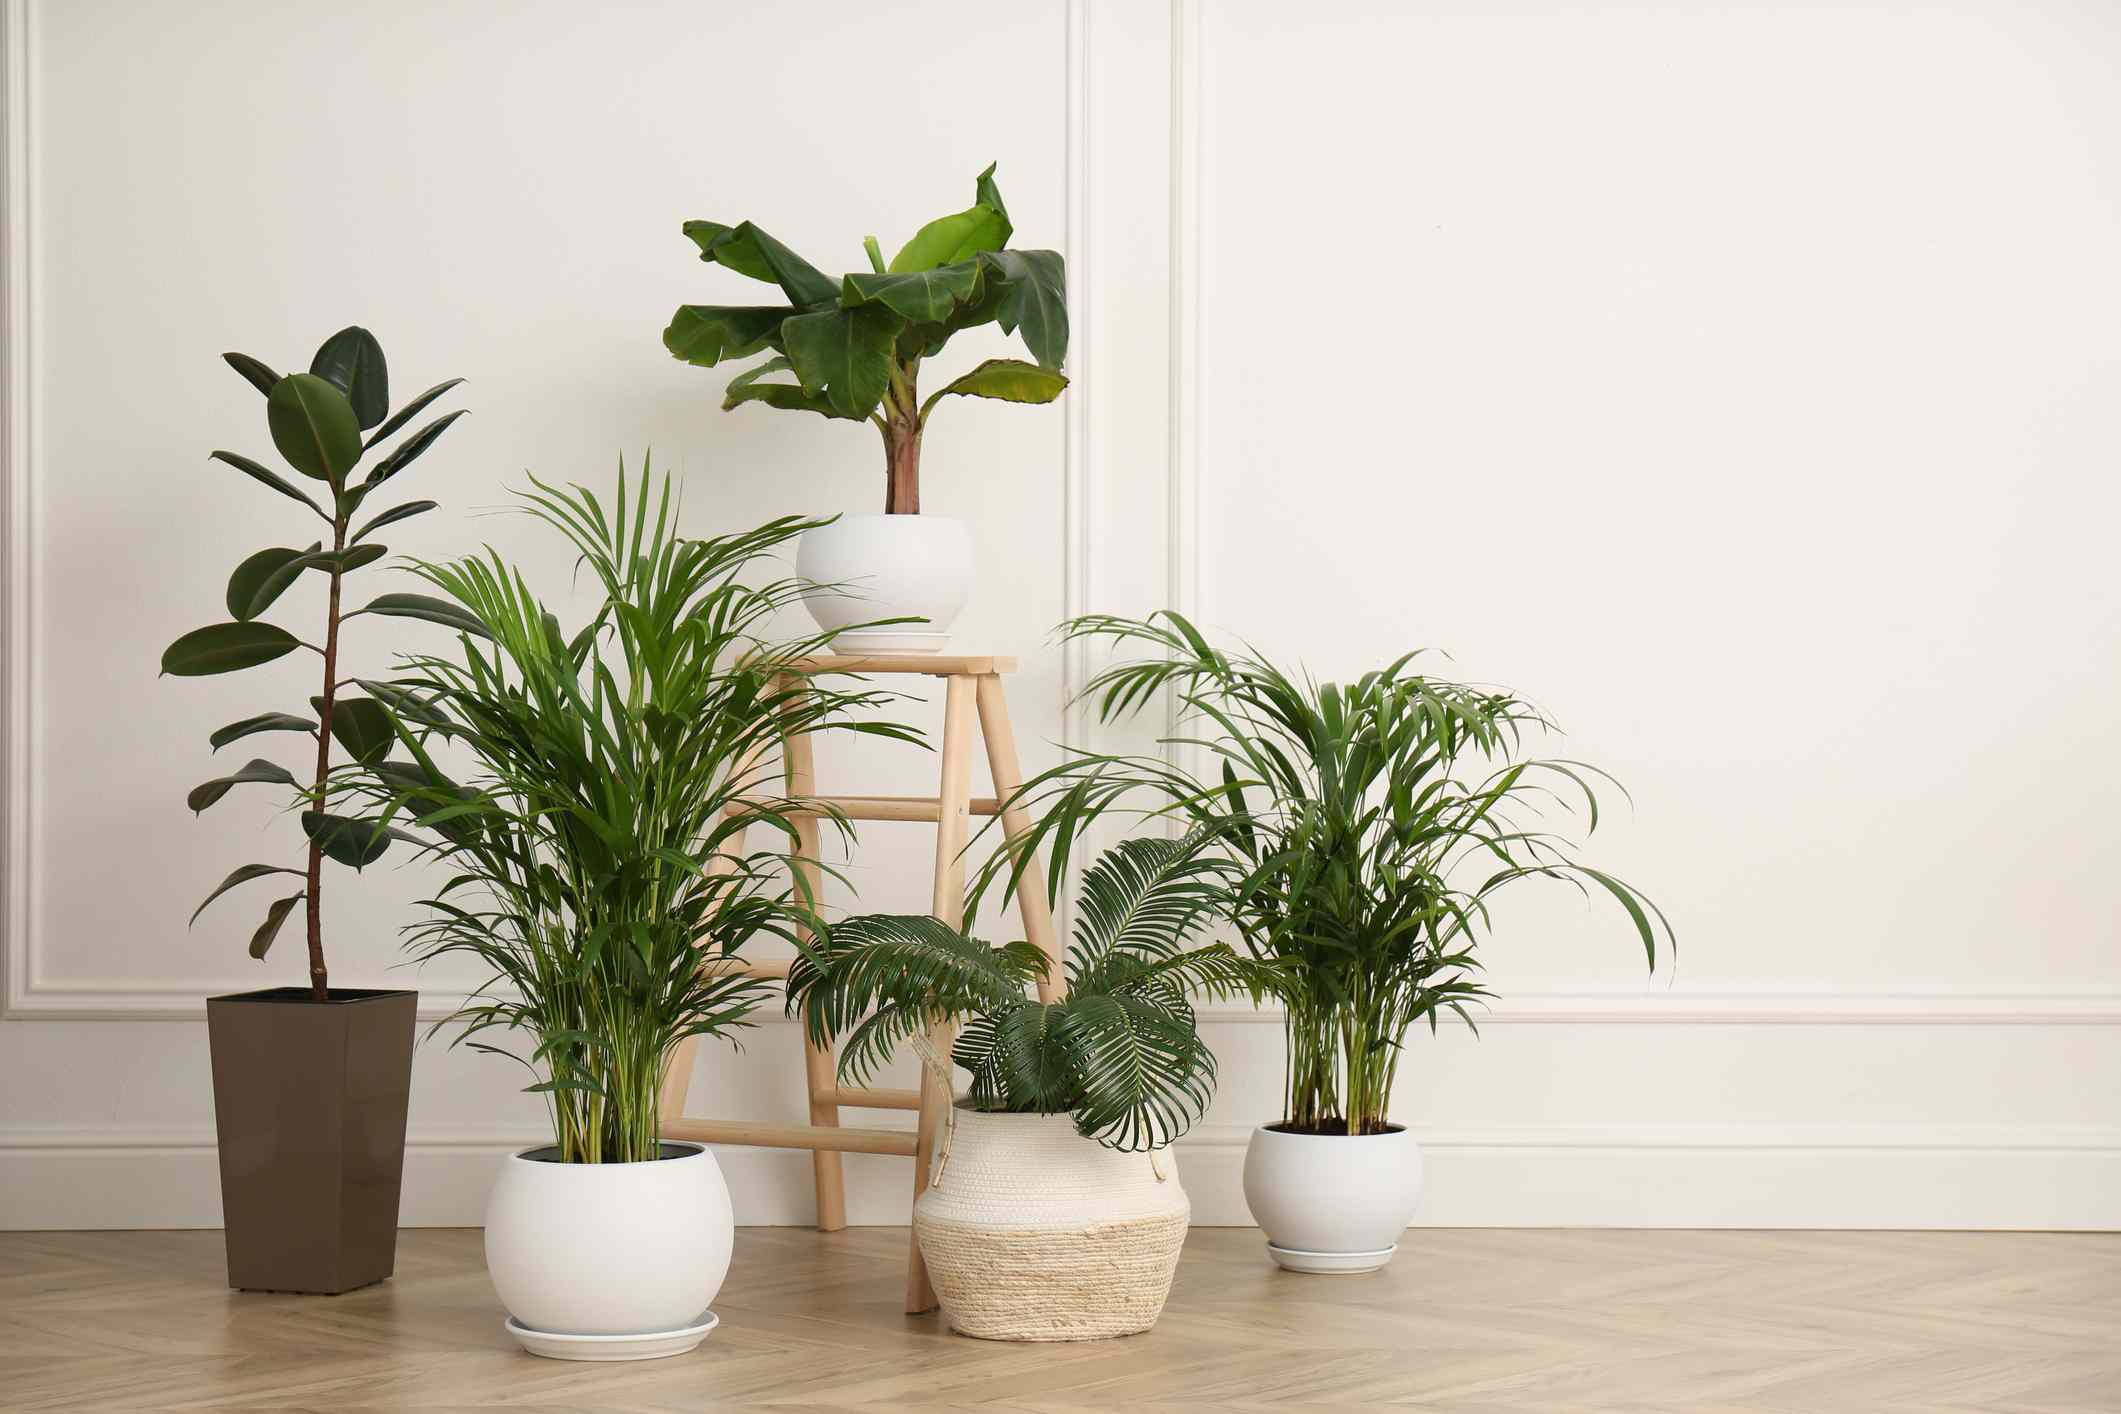 Bamboo palm, parlor palm, and various tropical plants in pots